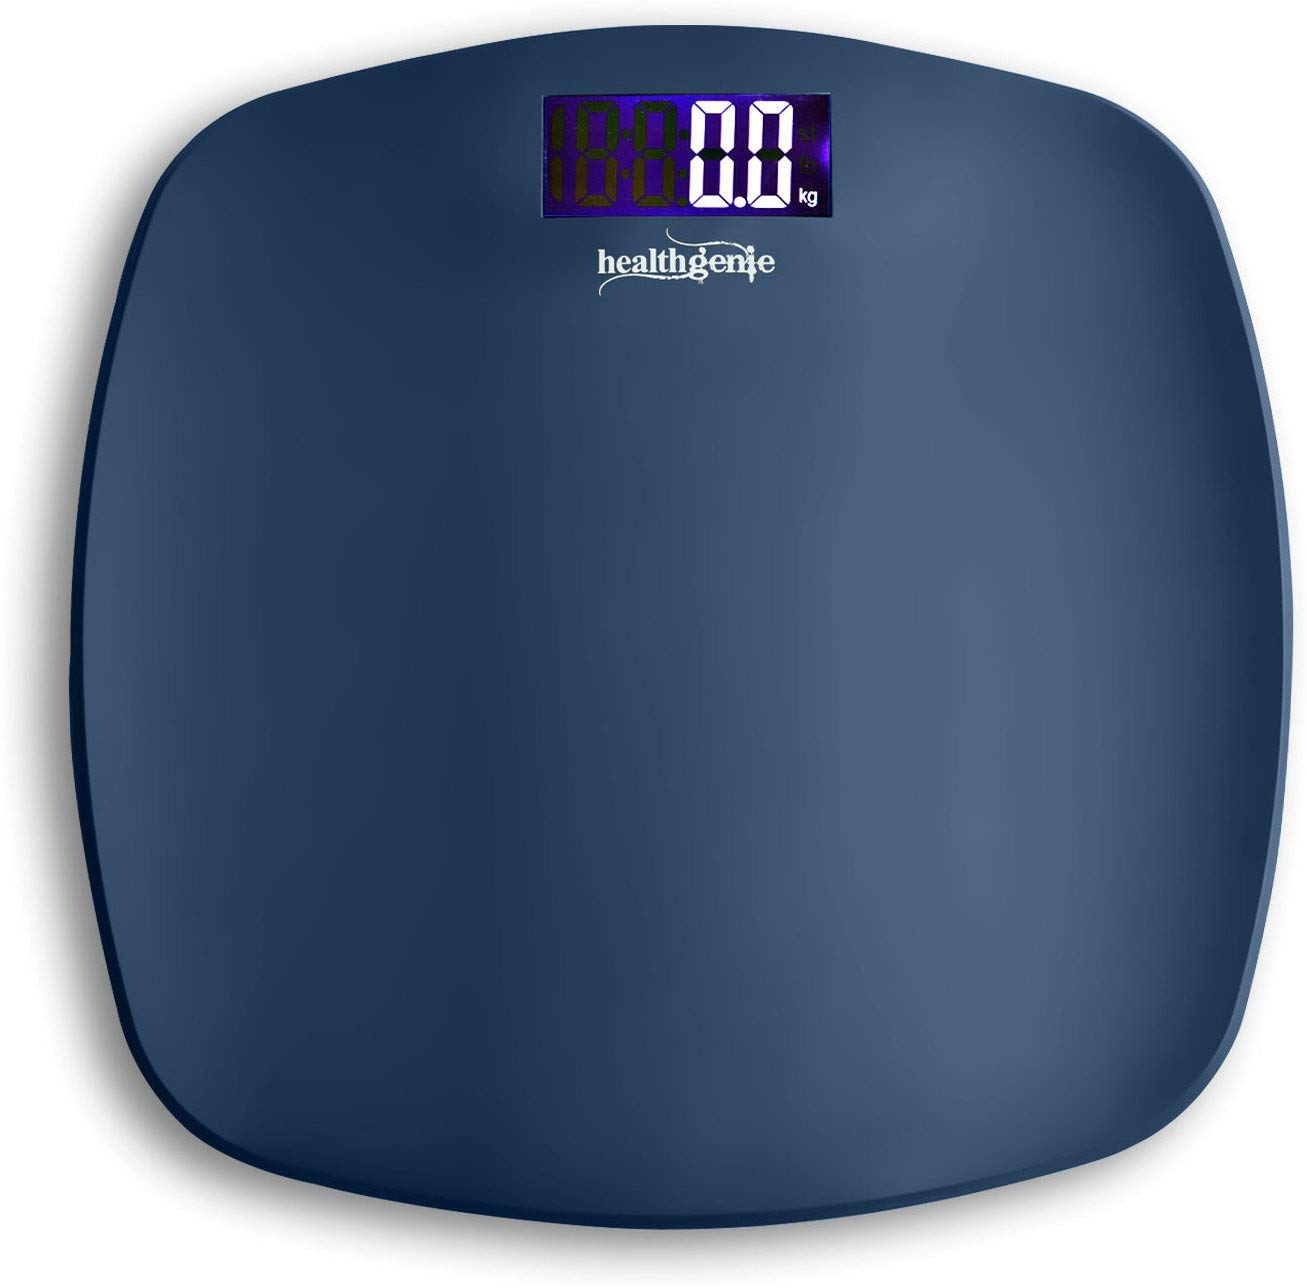 Healthgenie Thick Tempered Glass LCD Display Digital Weighing Machine